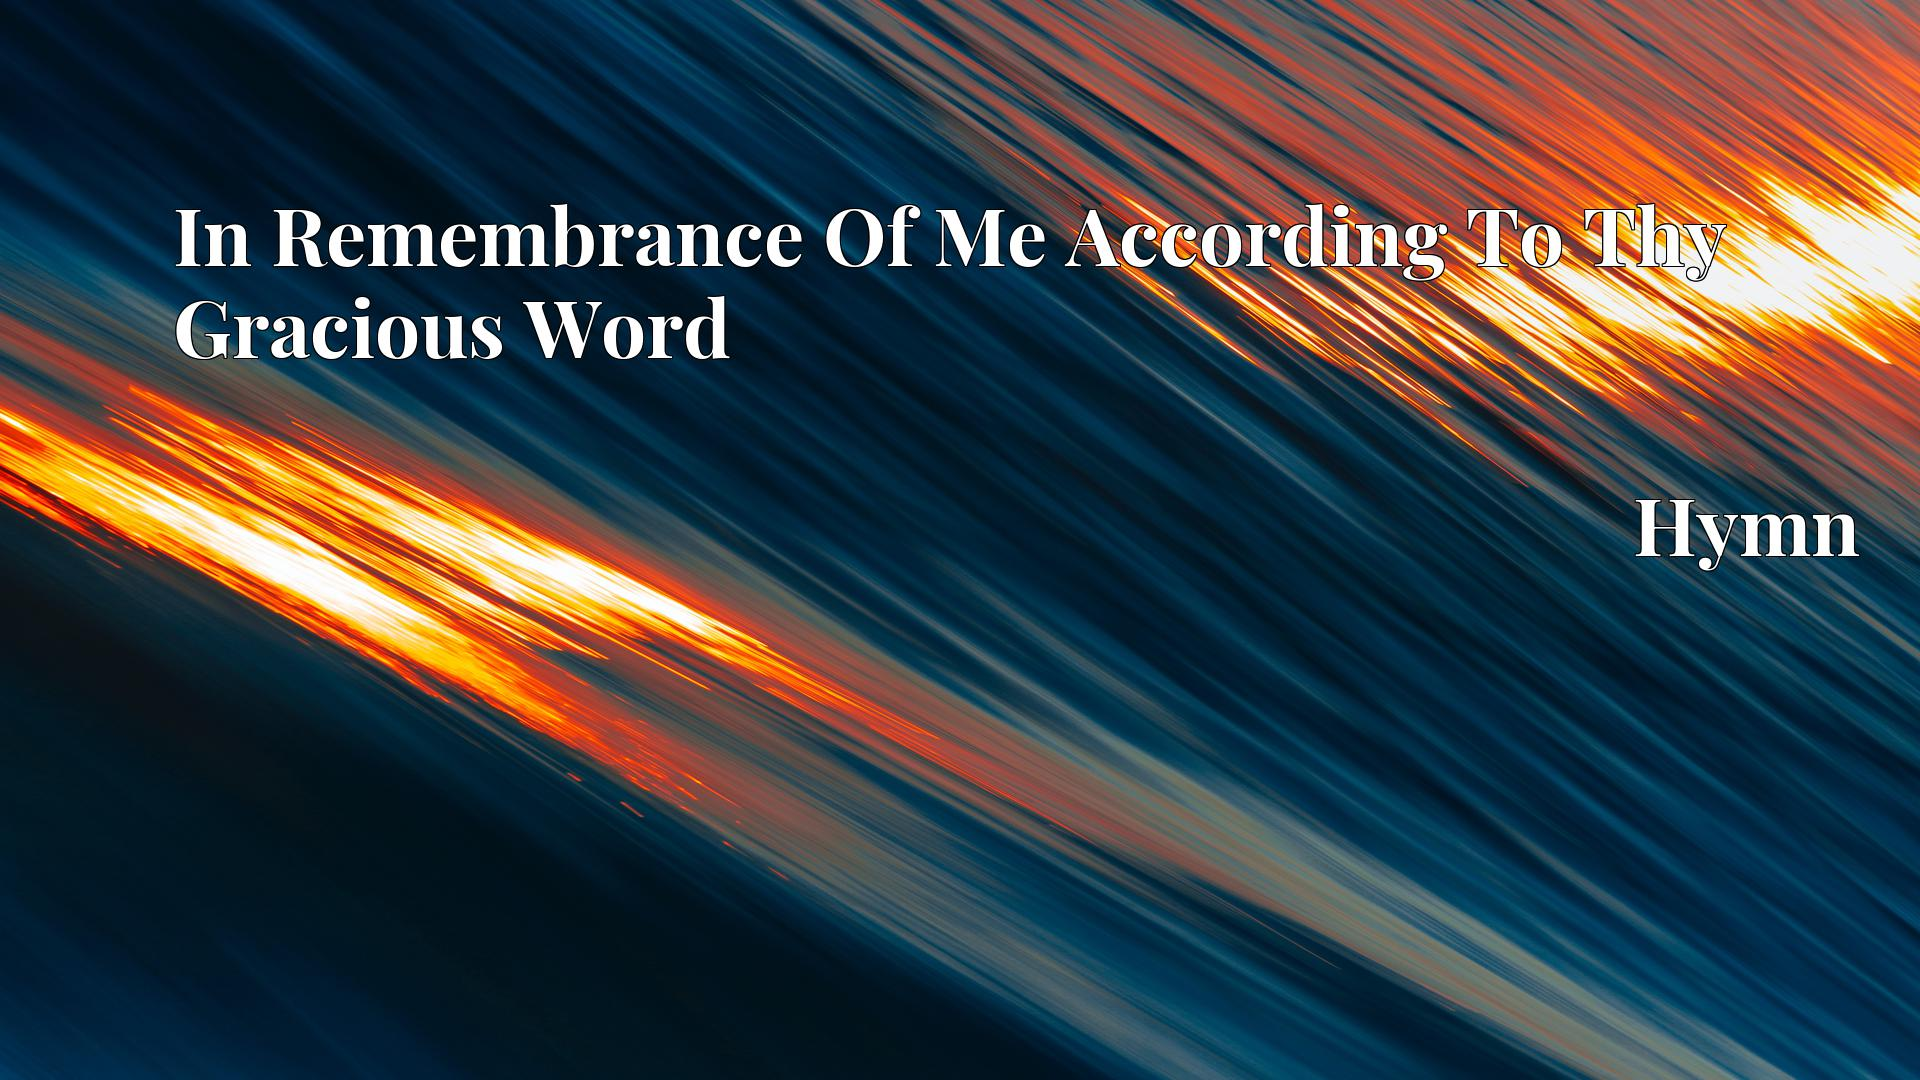 In Remembrance Of Me According To Thy Gracious Word - Hymn